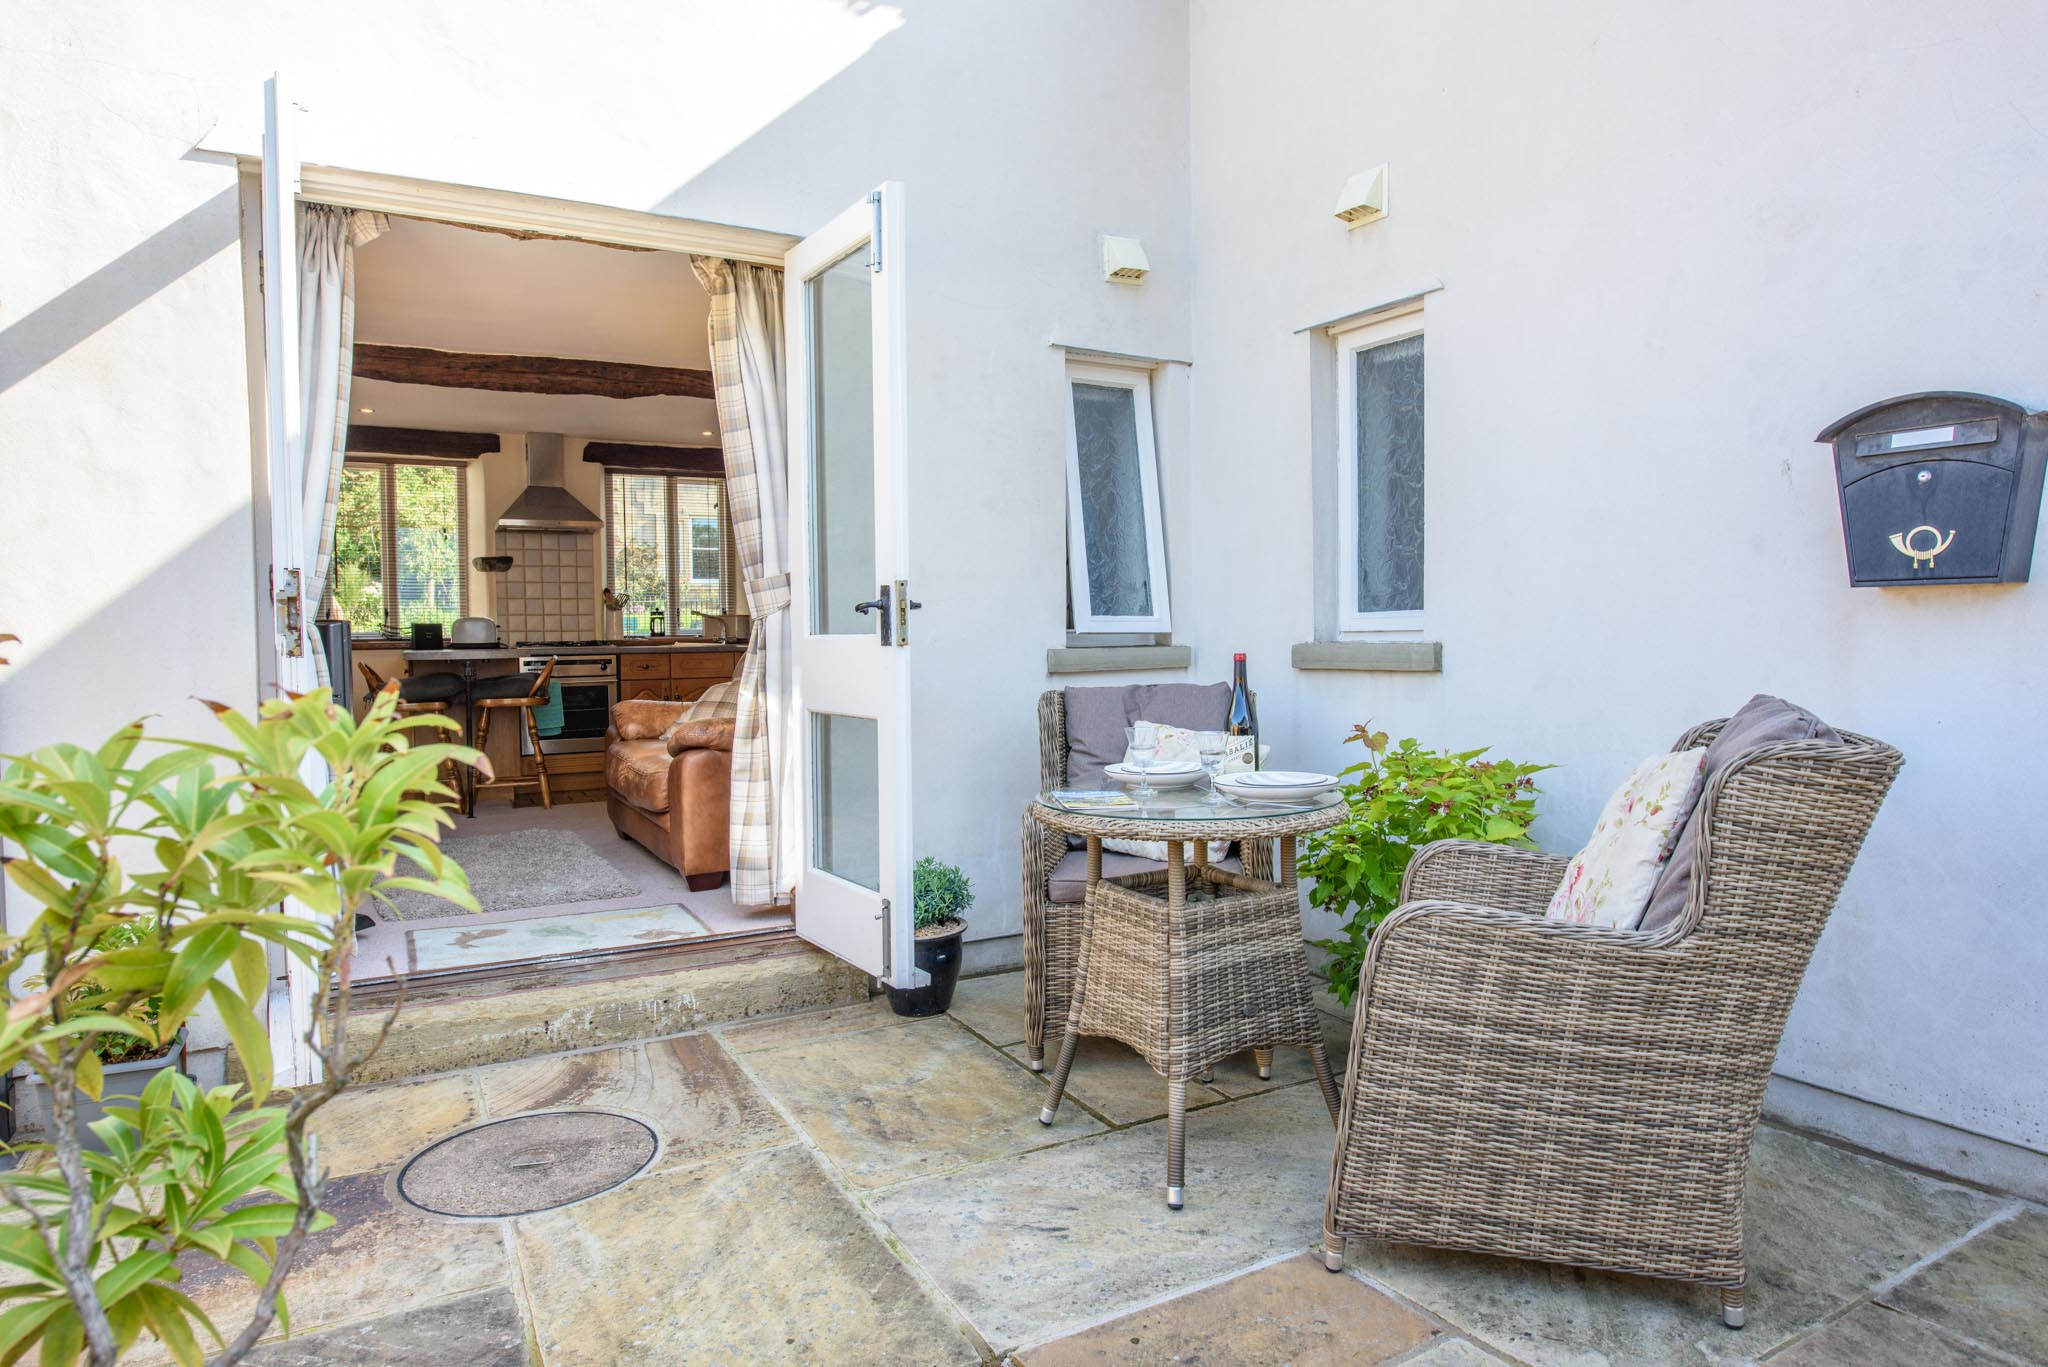 Rear patio with comfortable seating